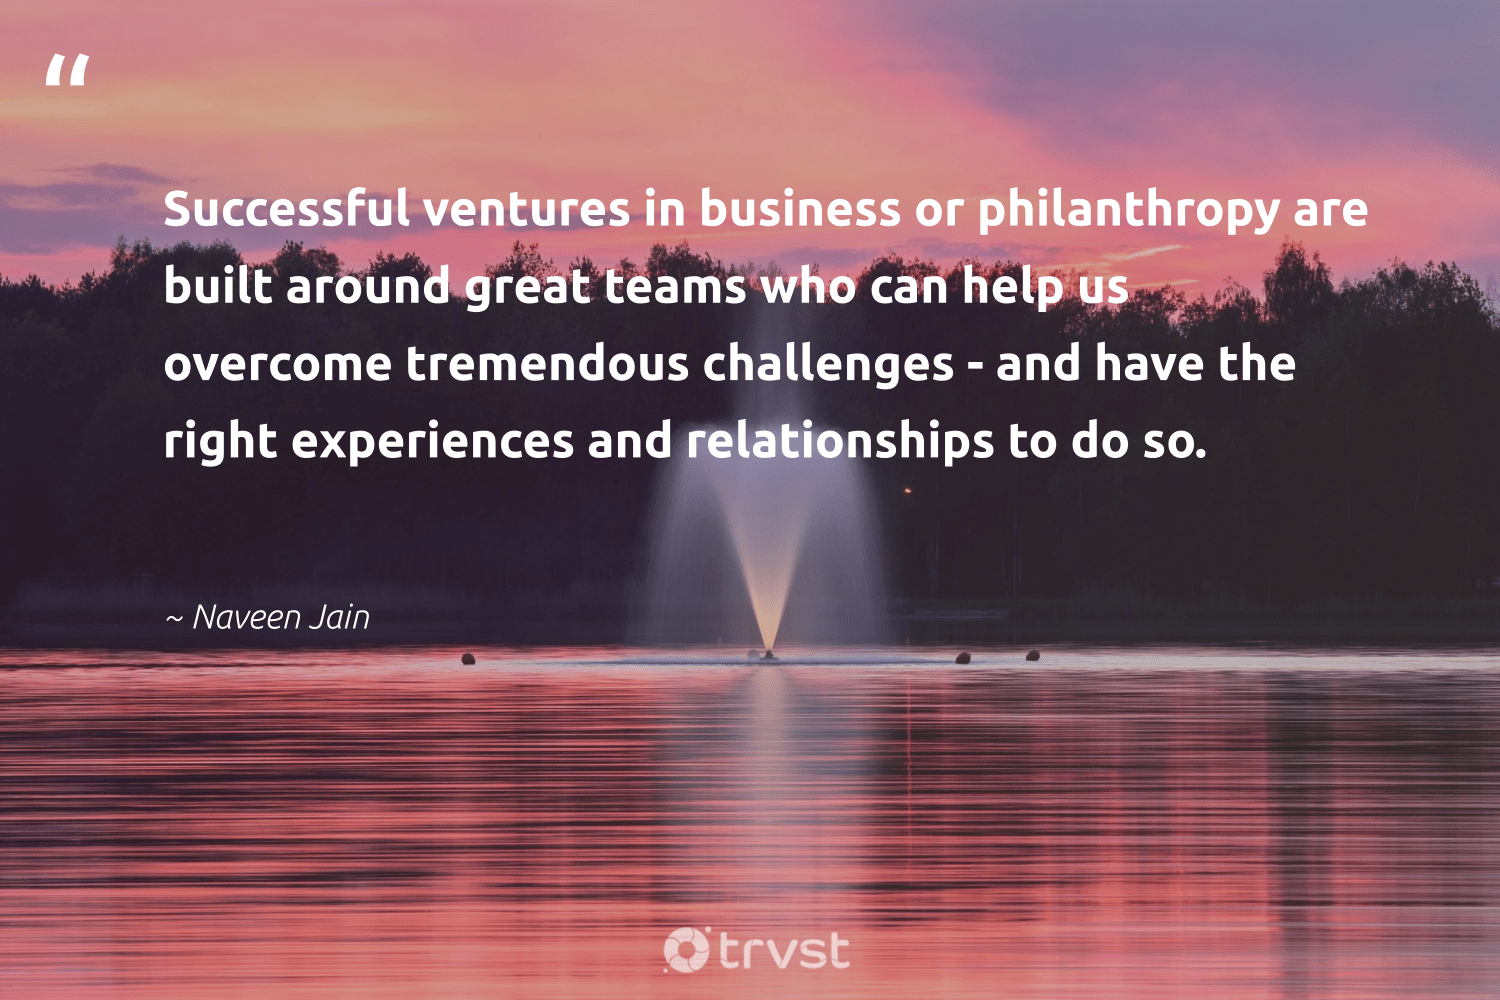 """Successful ventures in business or philanthropy are built around great teams who can help us overcome tremendous challenges - and have the right experiences and relationships to do so.""  - Naveen Jain #trvst #quotes #philanthropy #philanthropic #changemakers #itscooltobekind #socialchange #giveforthefuture #togetherwecan #bethechange #ecoconscious #dosomething"